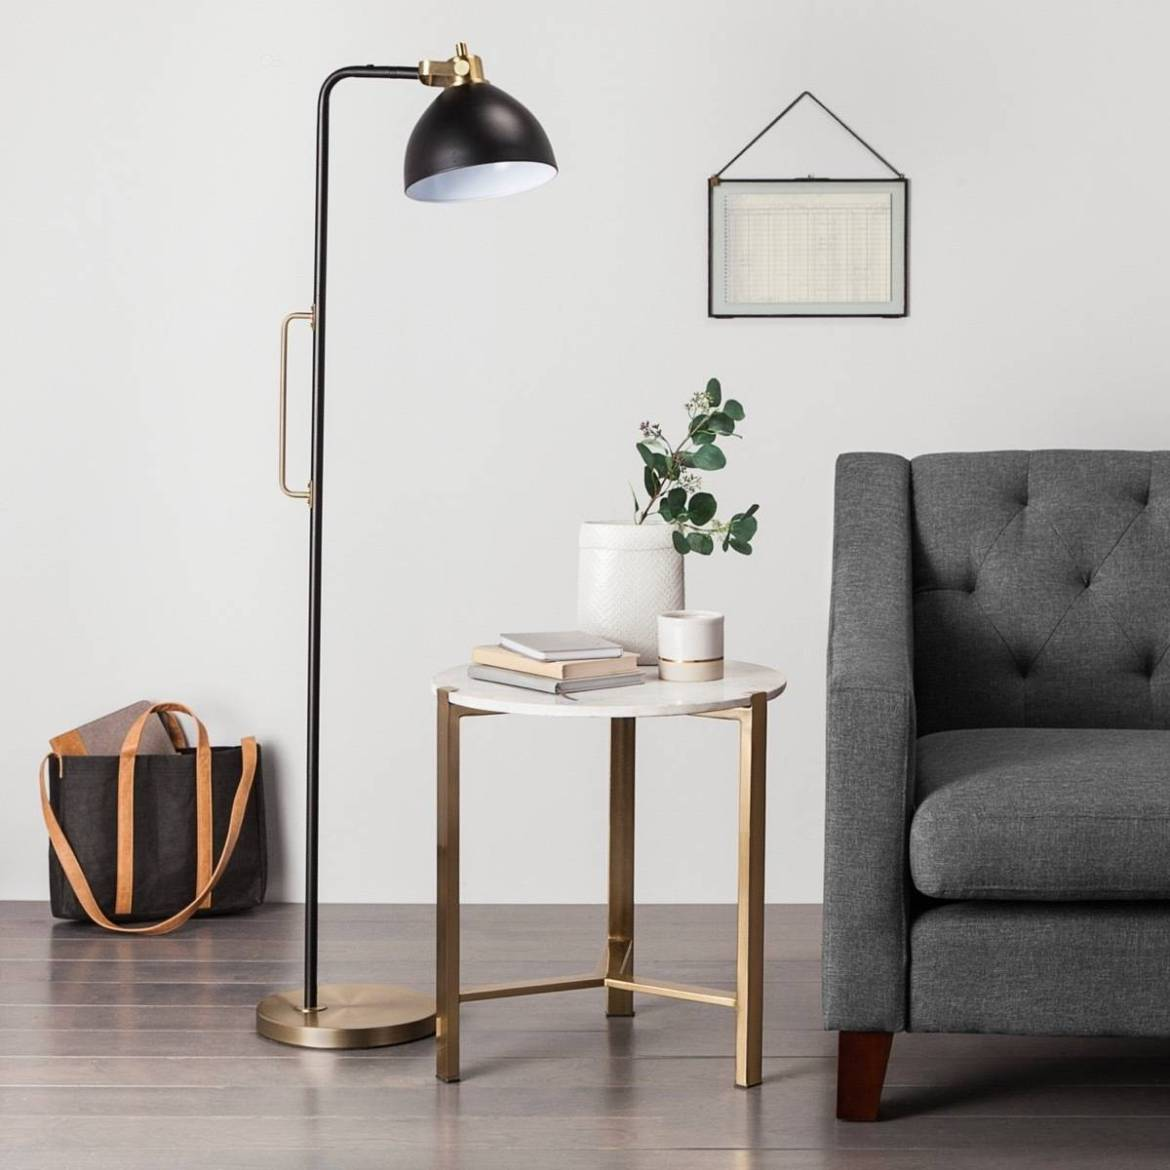 Black and brass floor lamp from Target